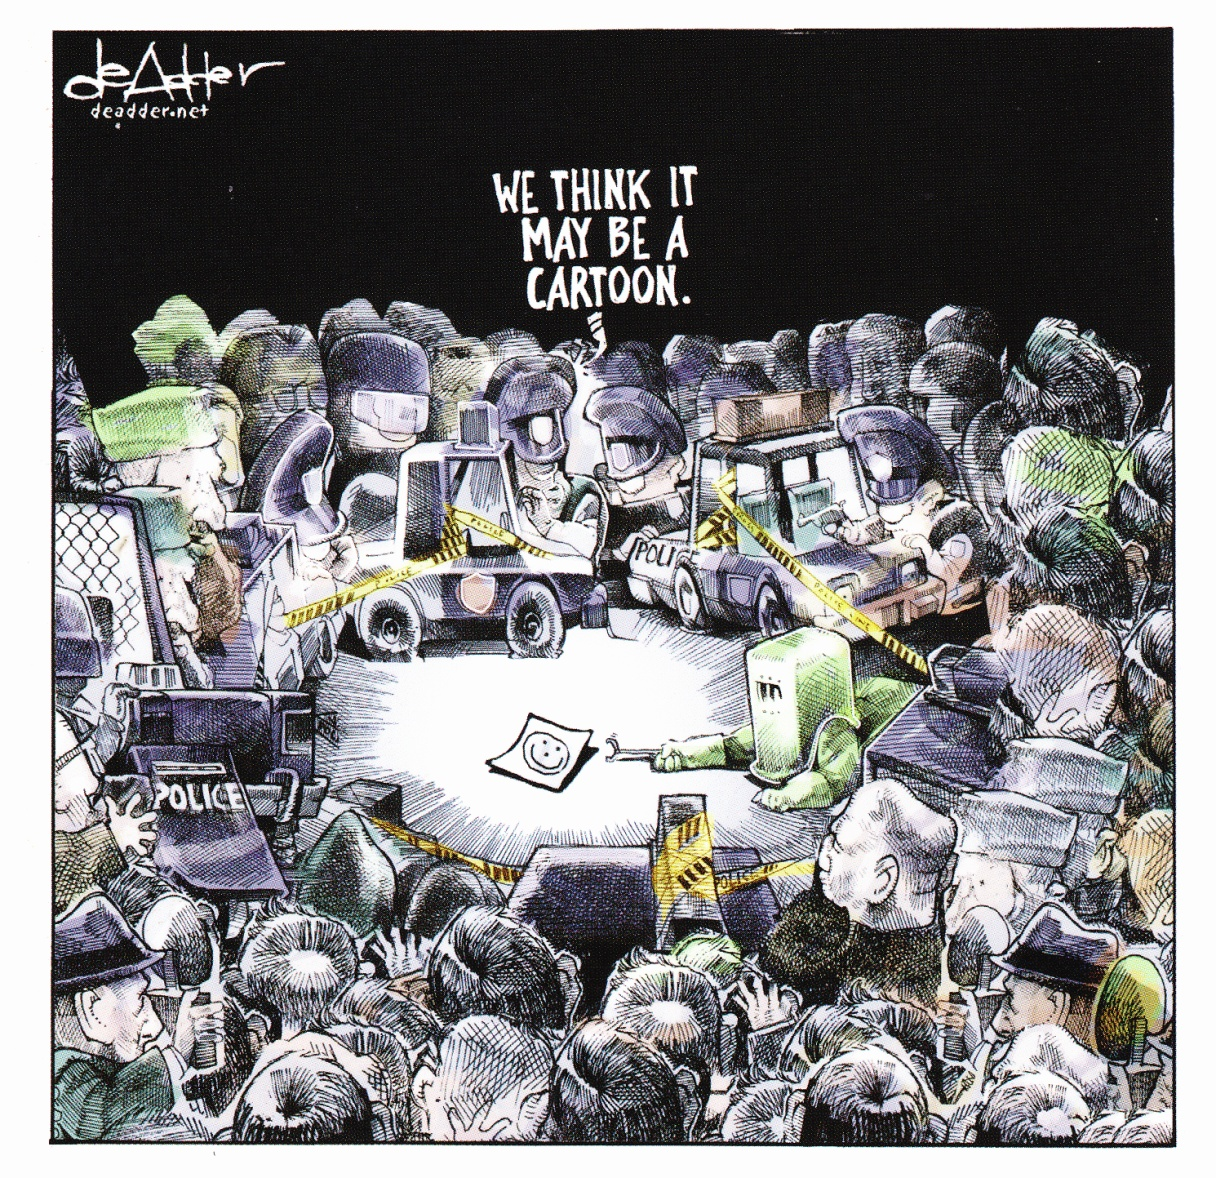 C:\Users\Robert\Documents\CARTOONING ILLUSTRATION ANIMATION\IMAGE BY CARTOONIST\D\DE ADDER MICHAEL, Portfoolio 22, back cover.jpg